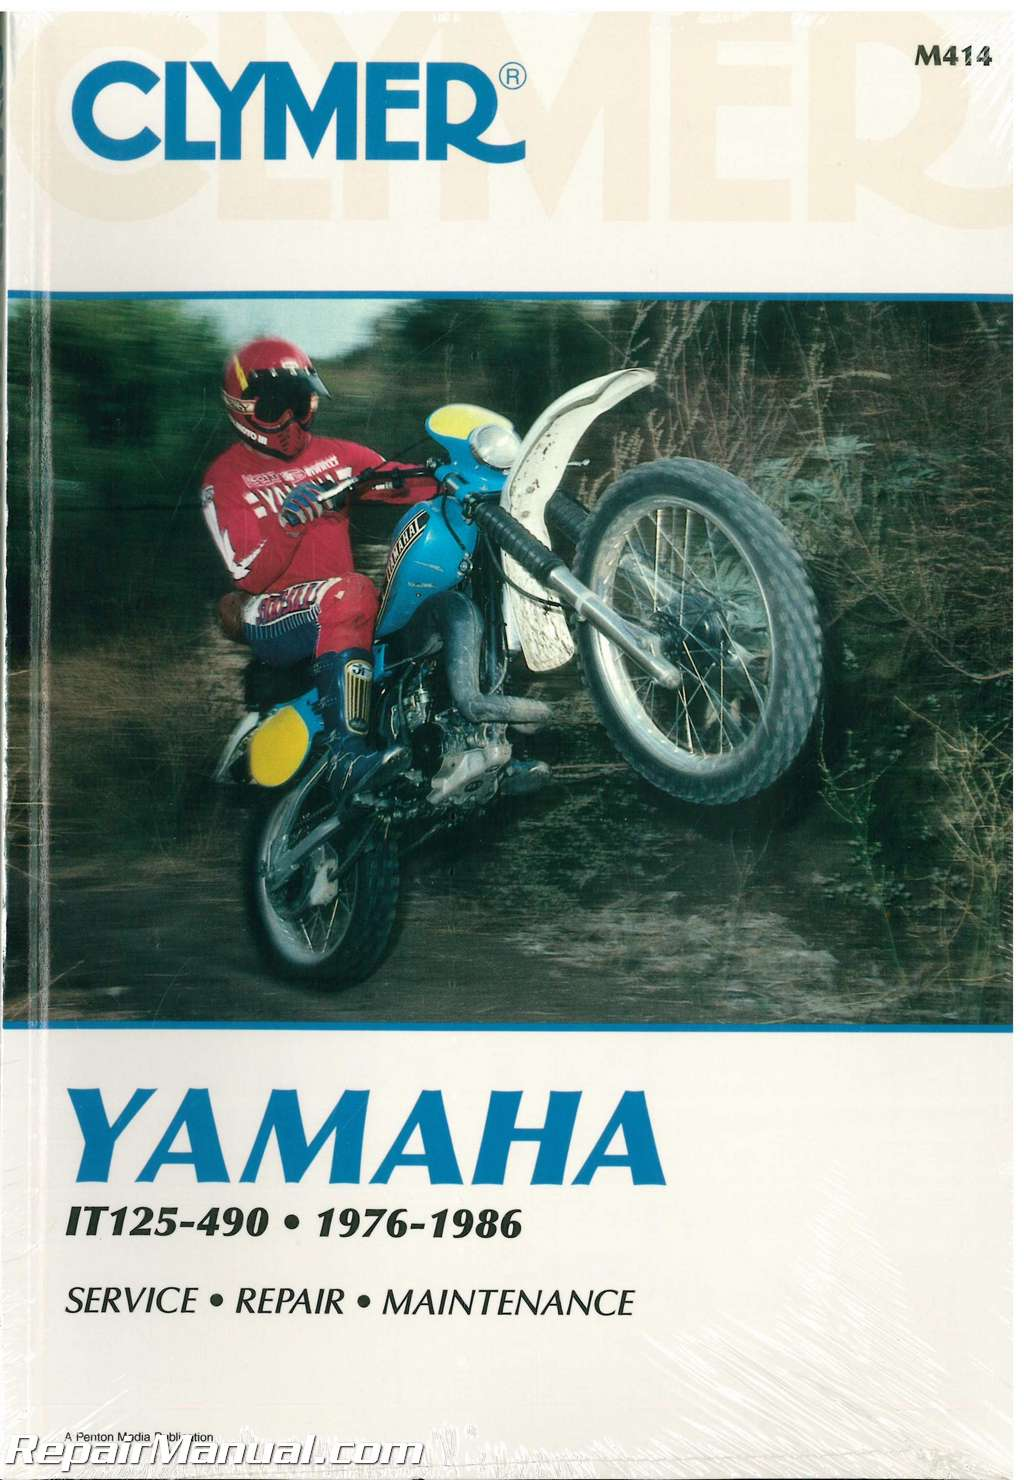 Yamaha It125 It175 It200 It400 It425 It465 It490